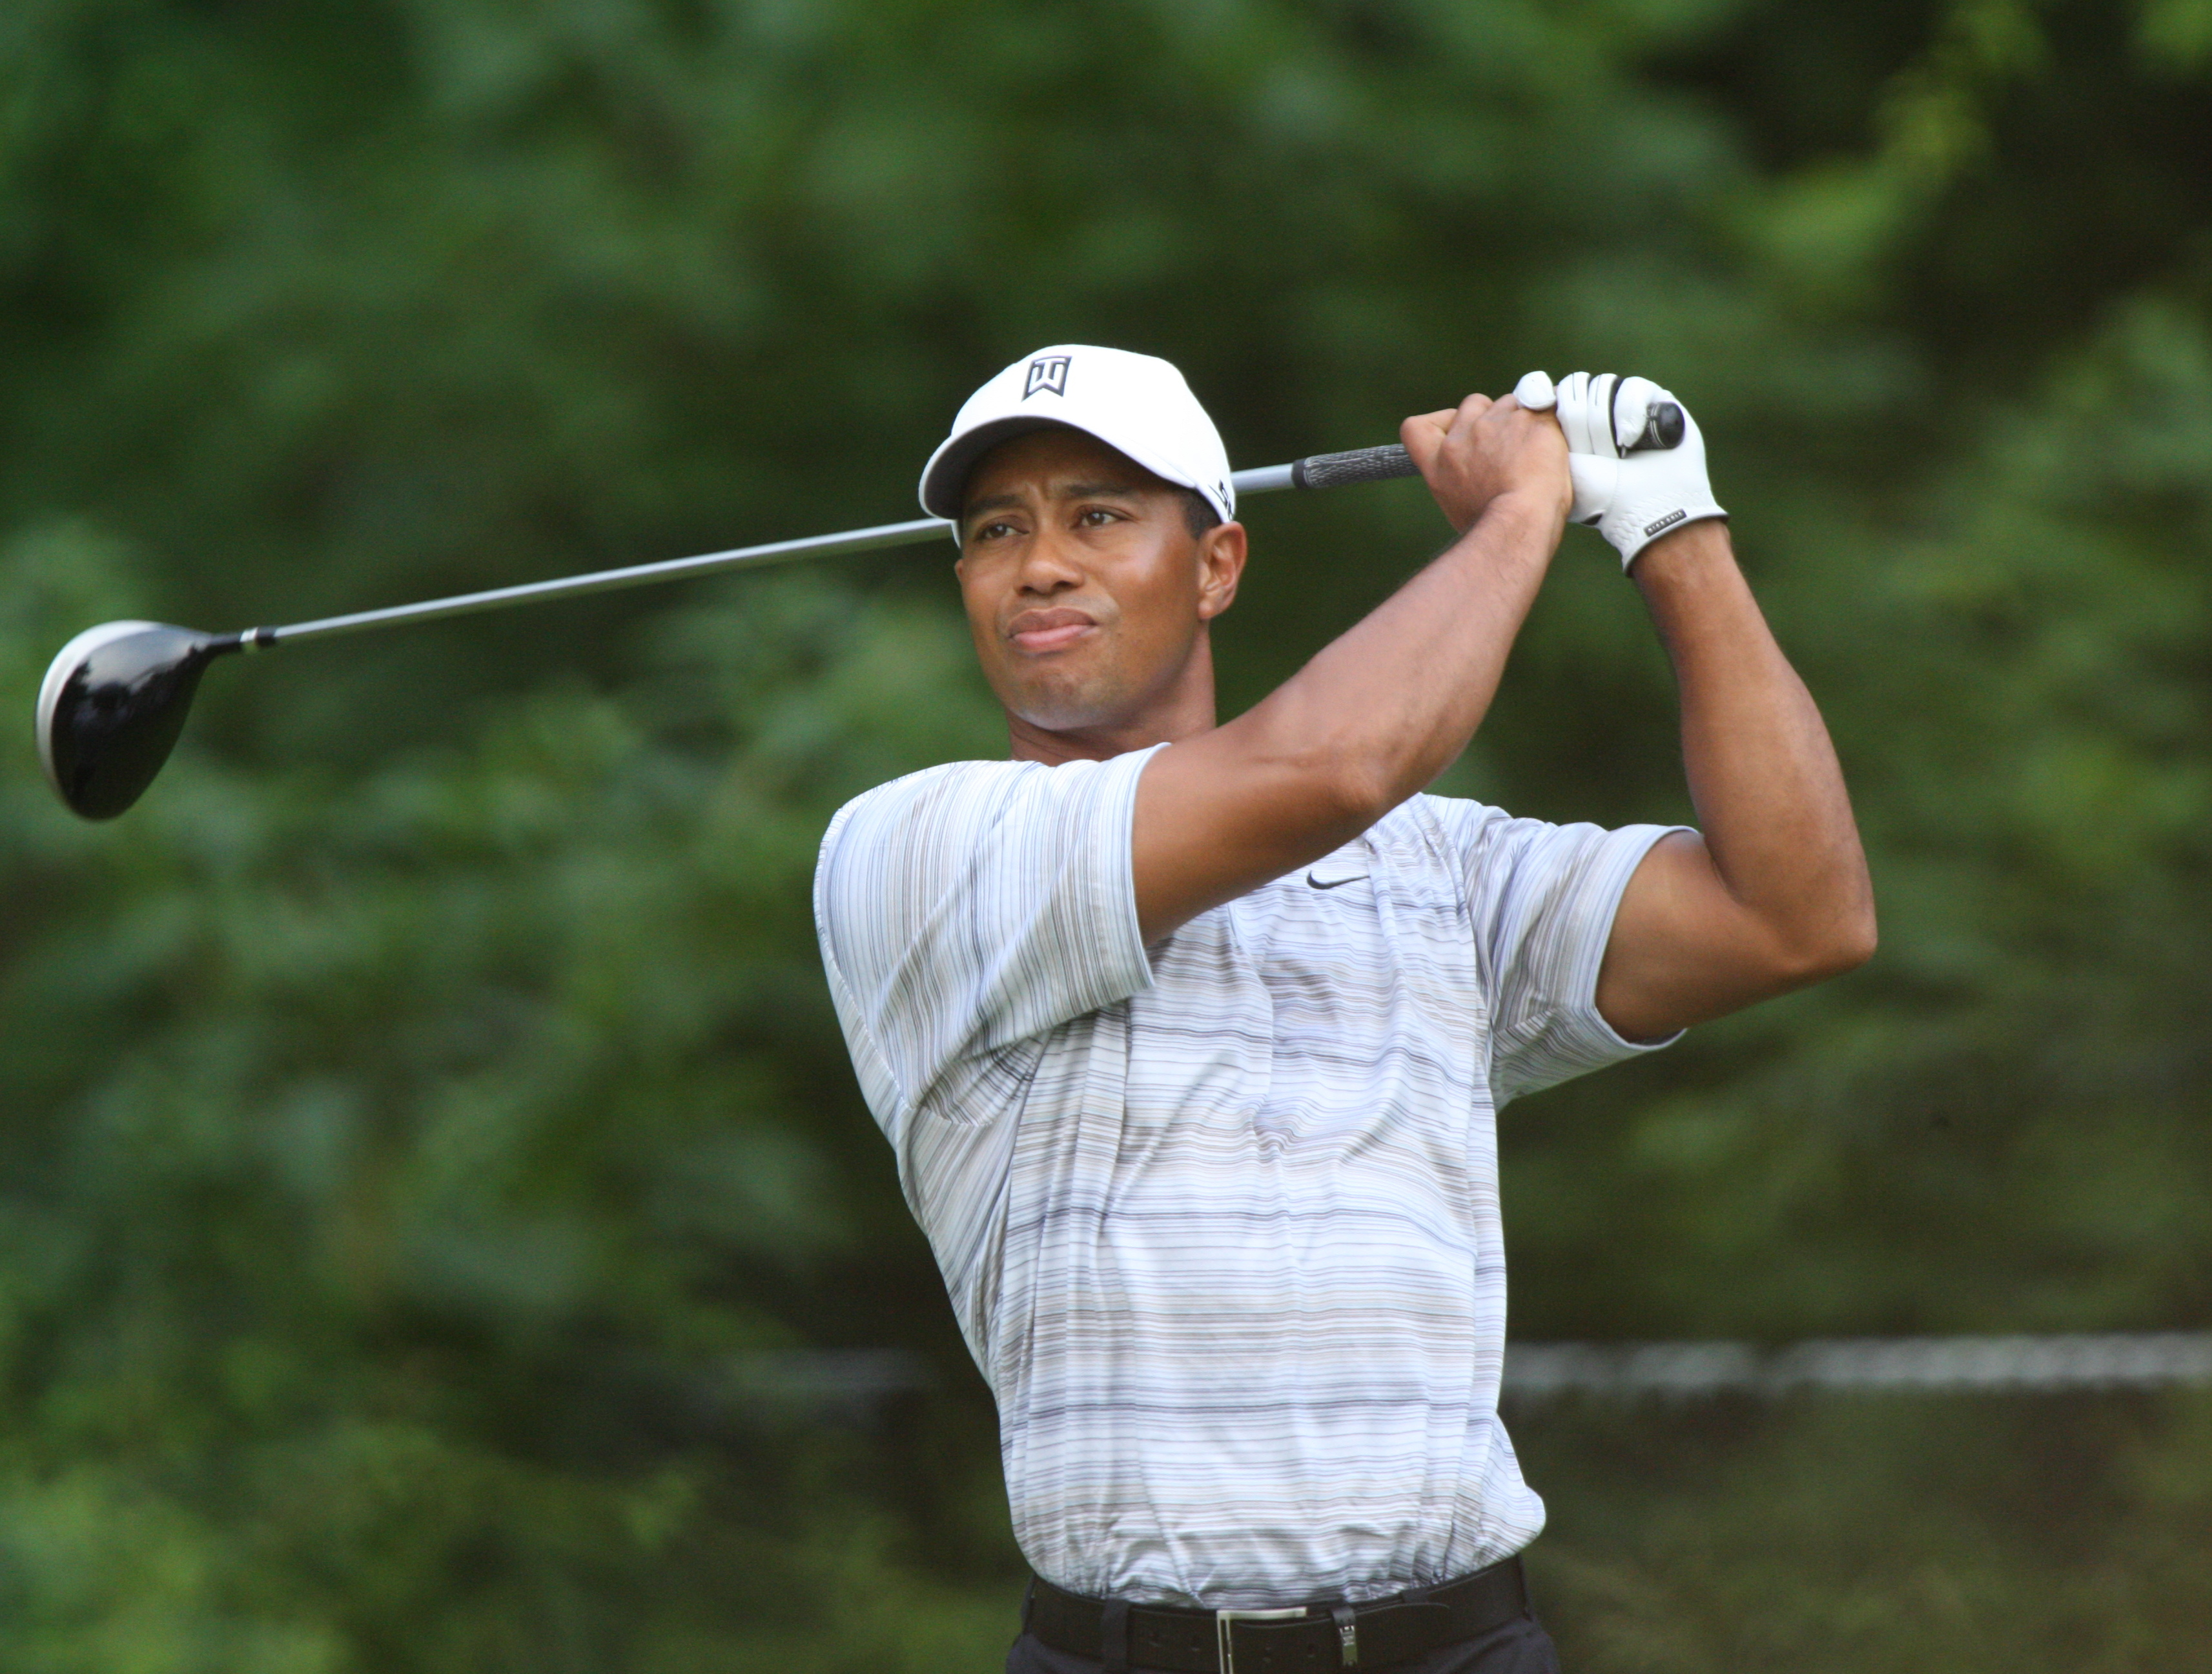 Cheating doesnt just happen on the playing field, it happens in everyday life as well. Tiger Woods may be the best golfer on the planet, but his cheating has lead him to be the black sheep of all cheating husbands and wives. (Courtesy WikiCommons/Keith Allison)